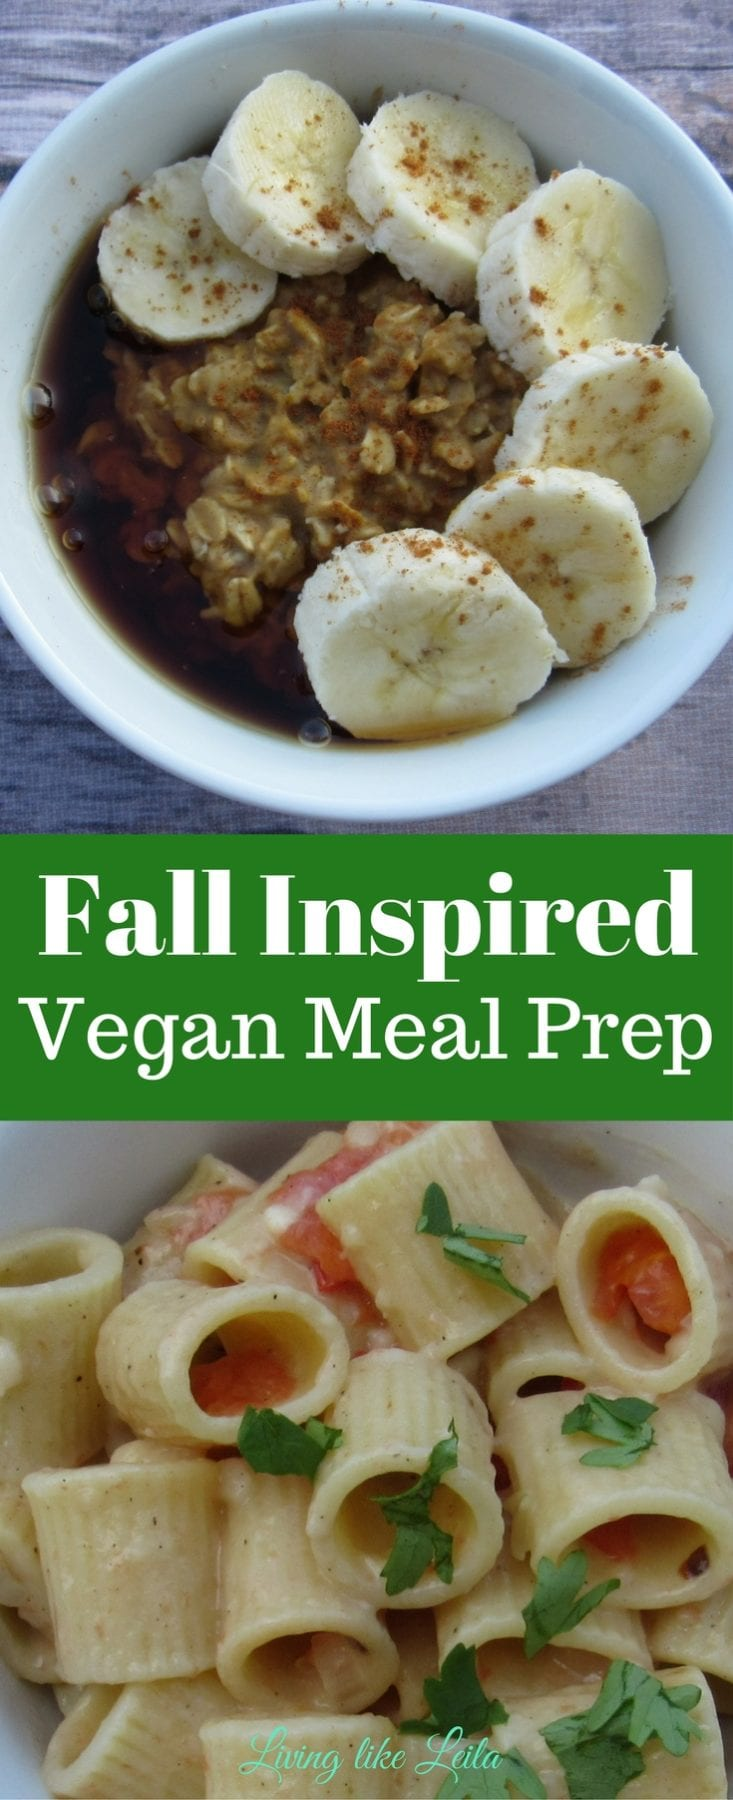 Warm pumpkin oatmeal, creamy pasta, pumpkin chocolate bread, doesn't that all sound delicious? Fill your week with delicious, vegan, Fall inspired meals! --www.LivinglikeLeila.com--